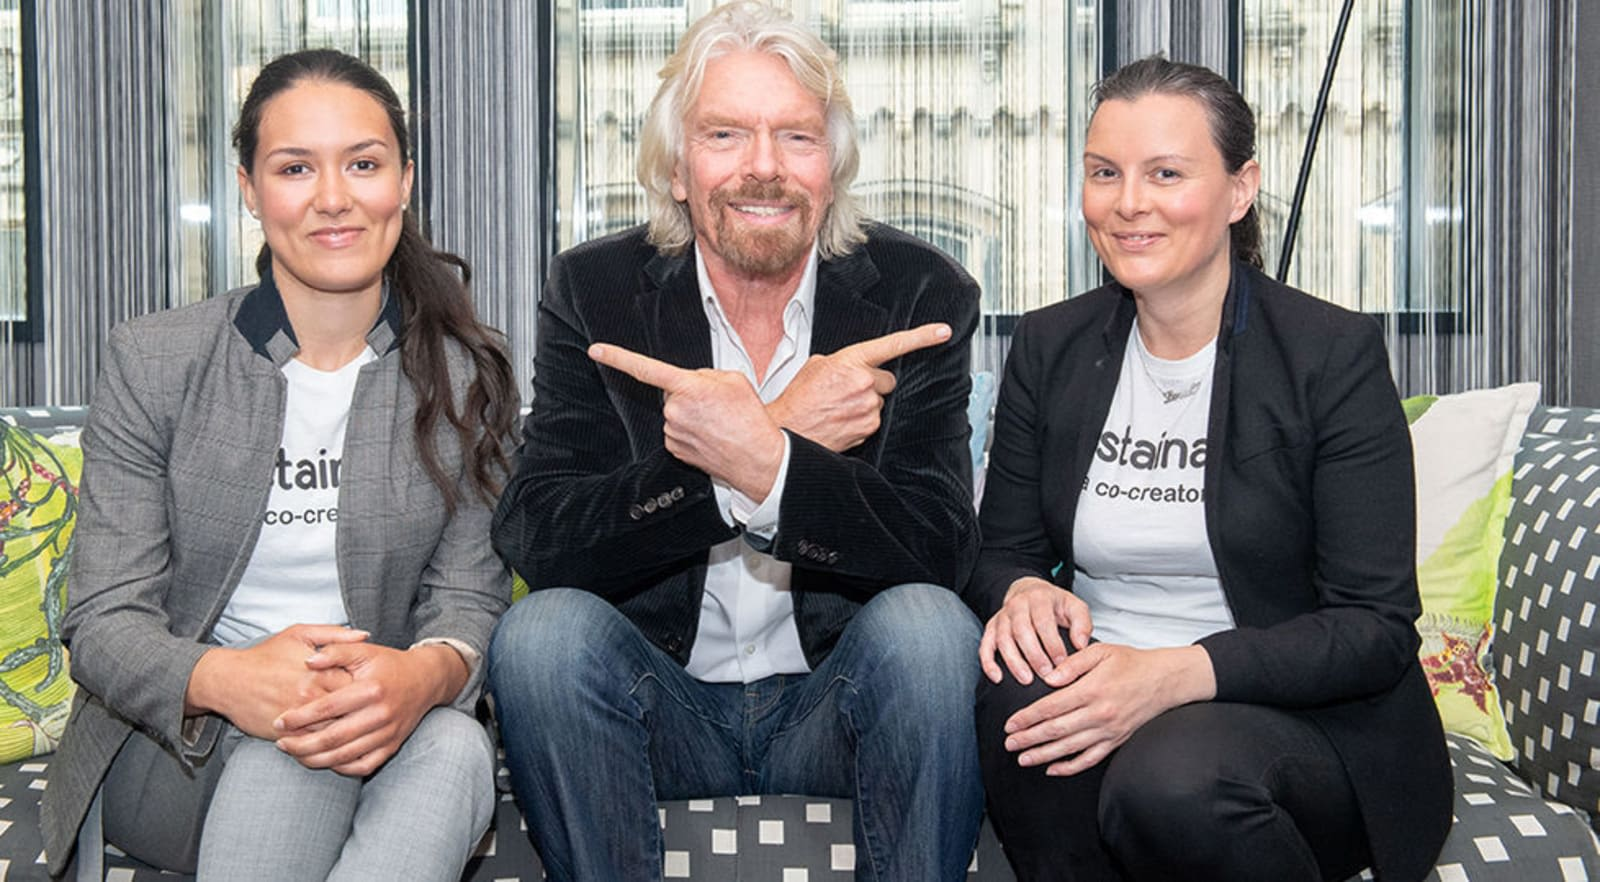 The founders of Sustainably with Richard Branson